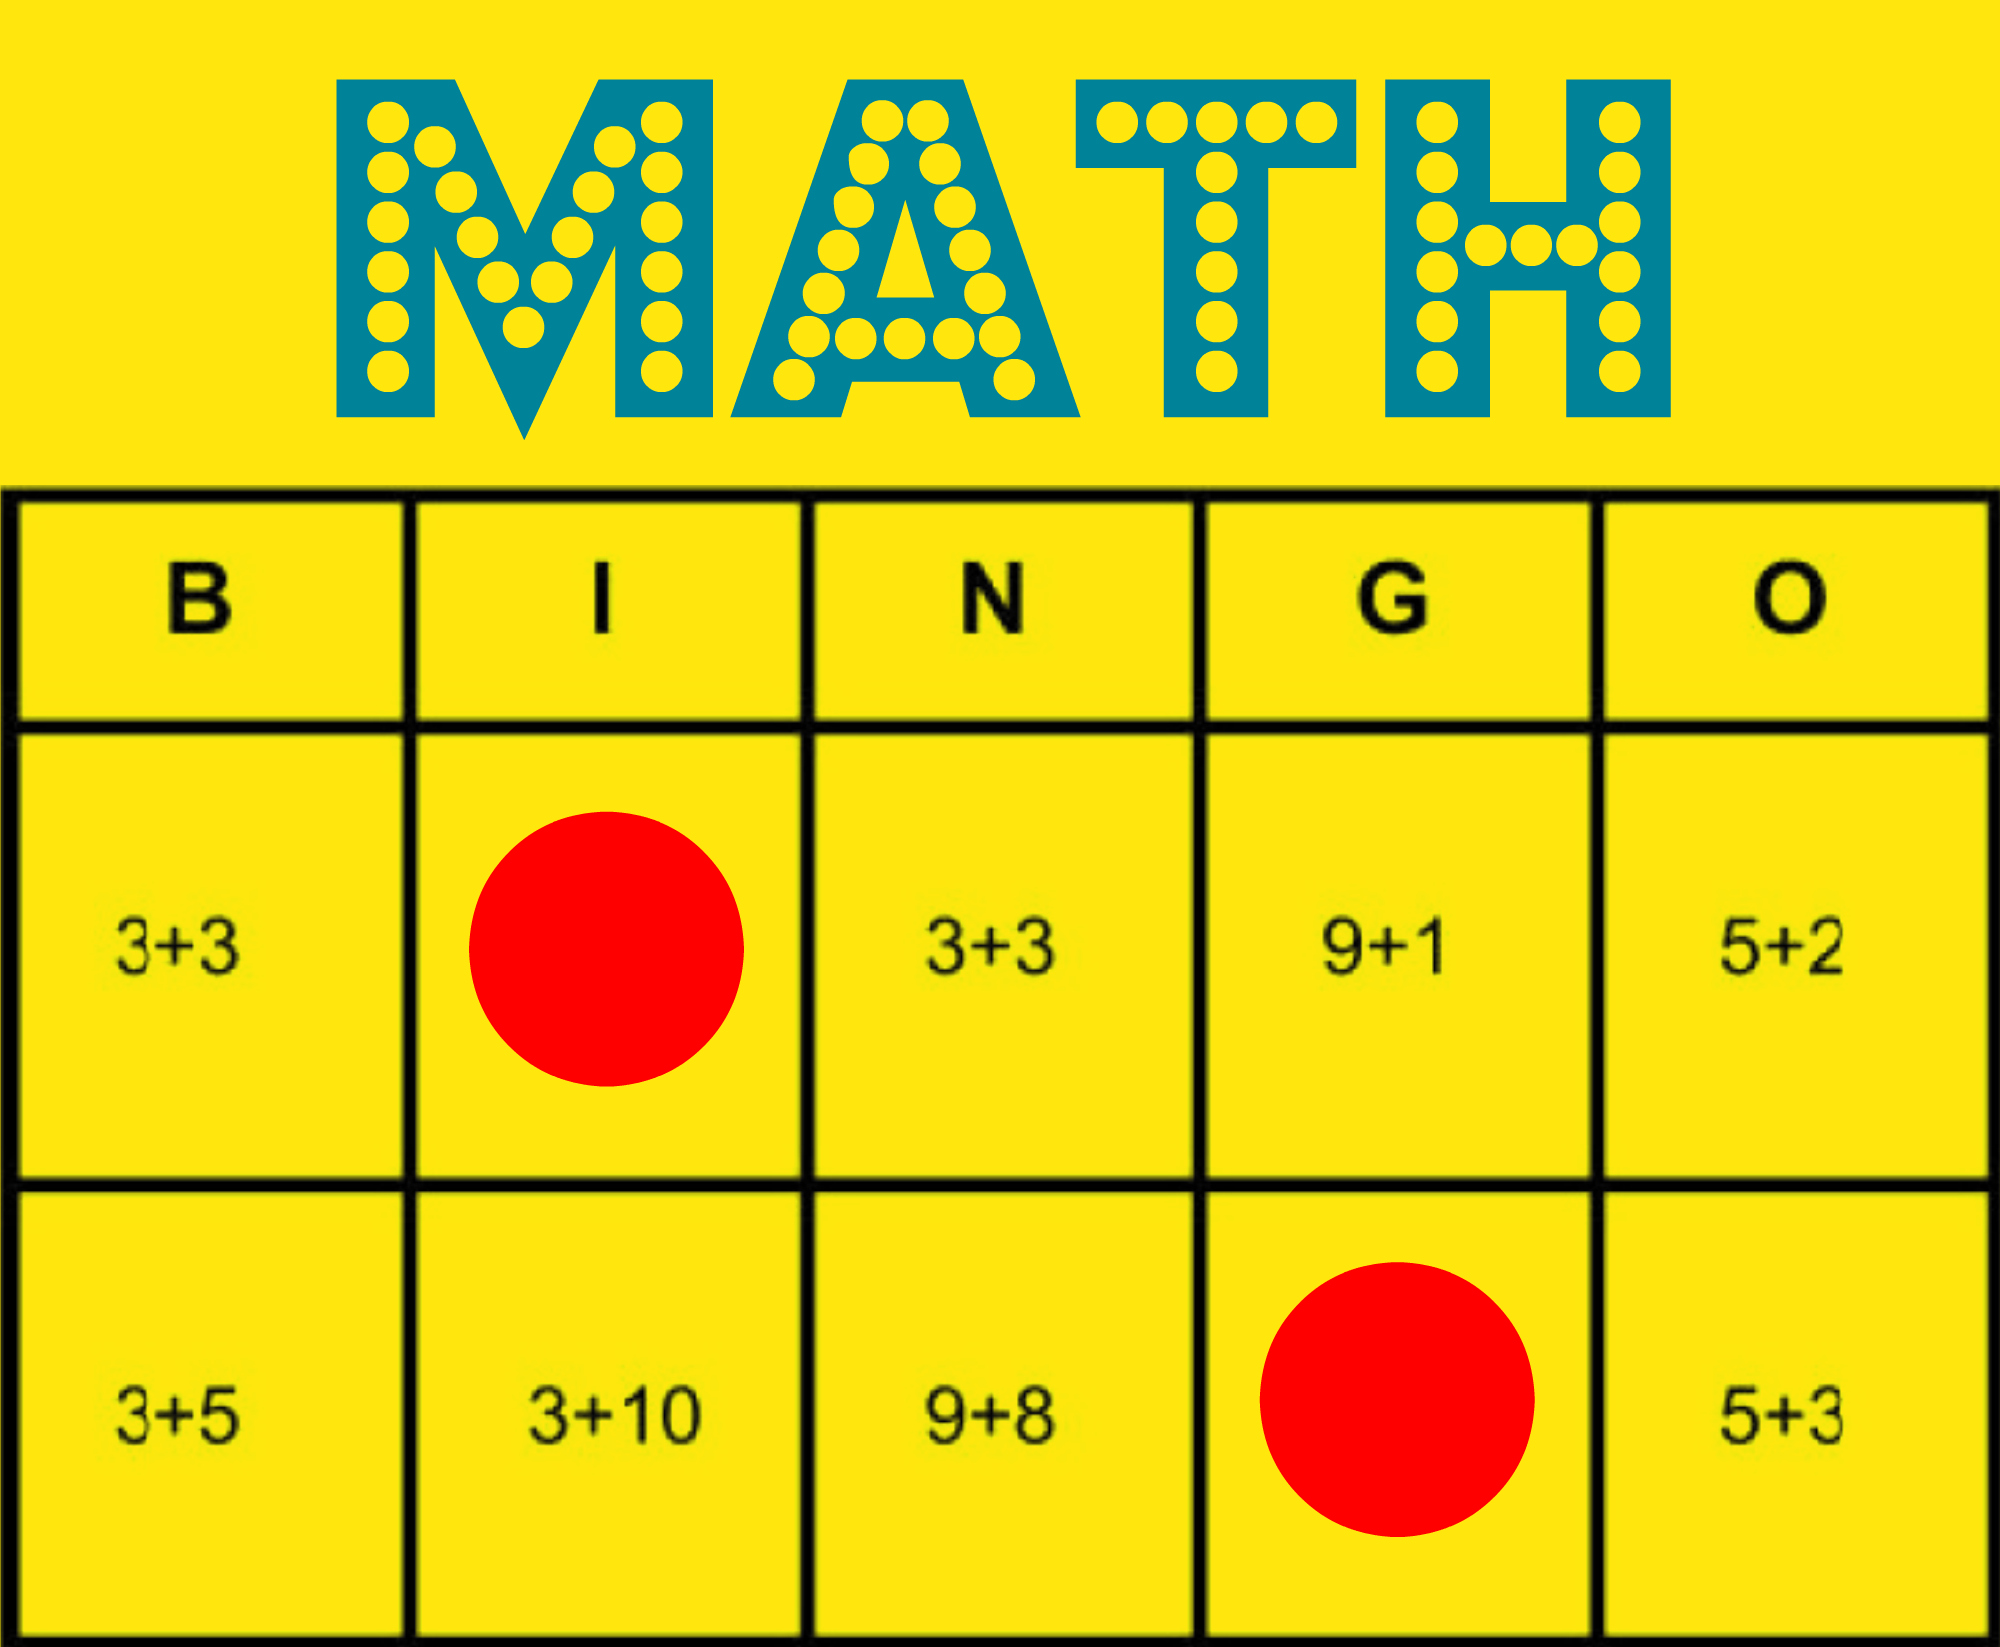 picture about Math Bingo Printable referred to as Math Bingo: No cost Printable Sport toward Support All College students Understand